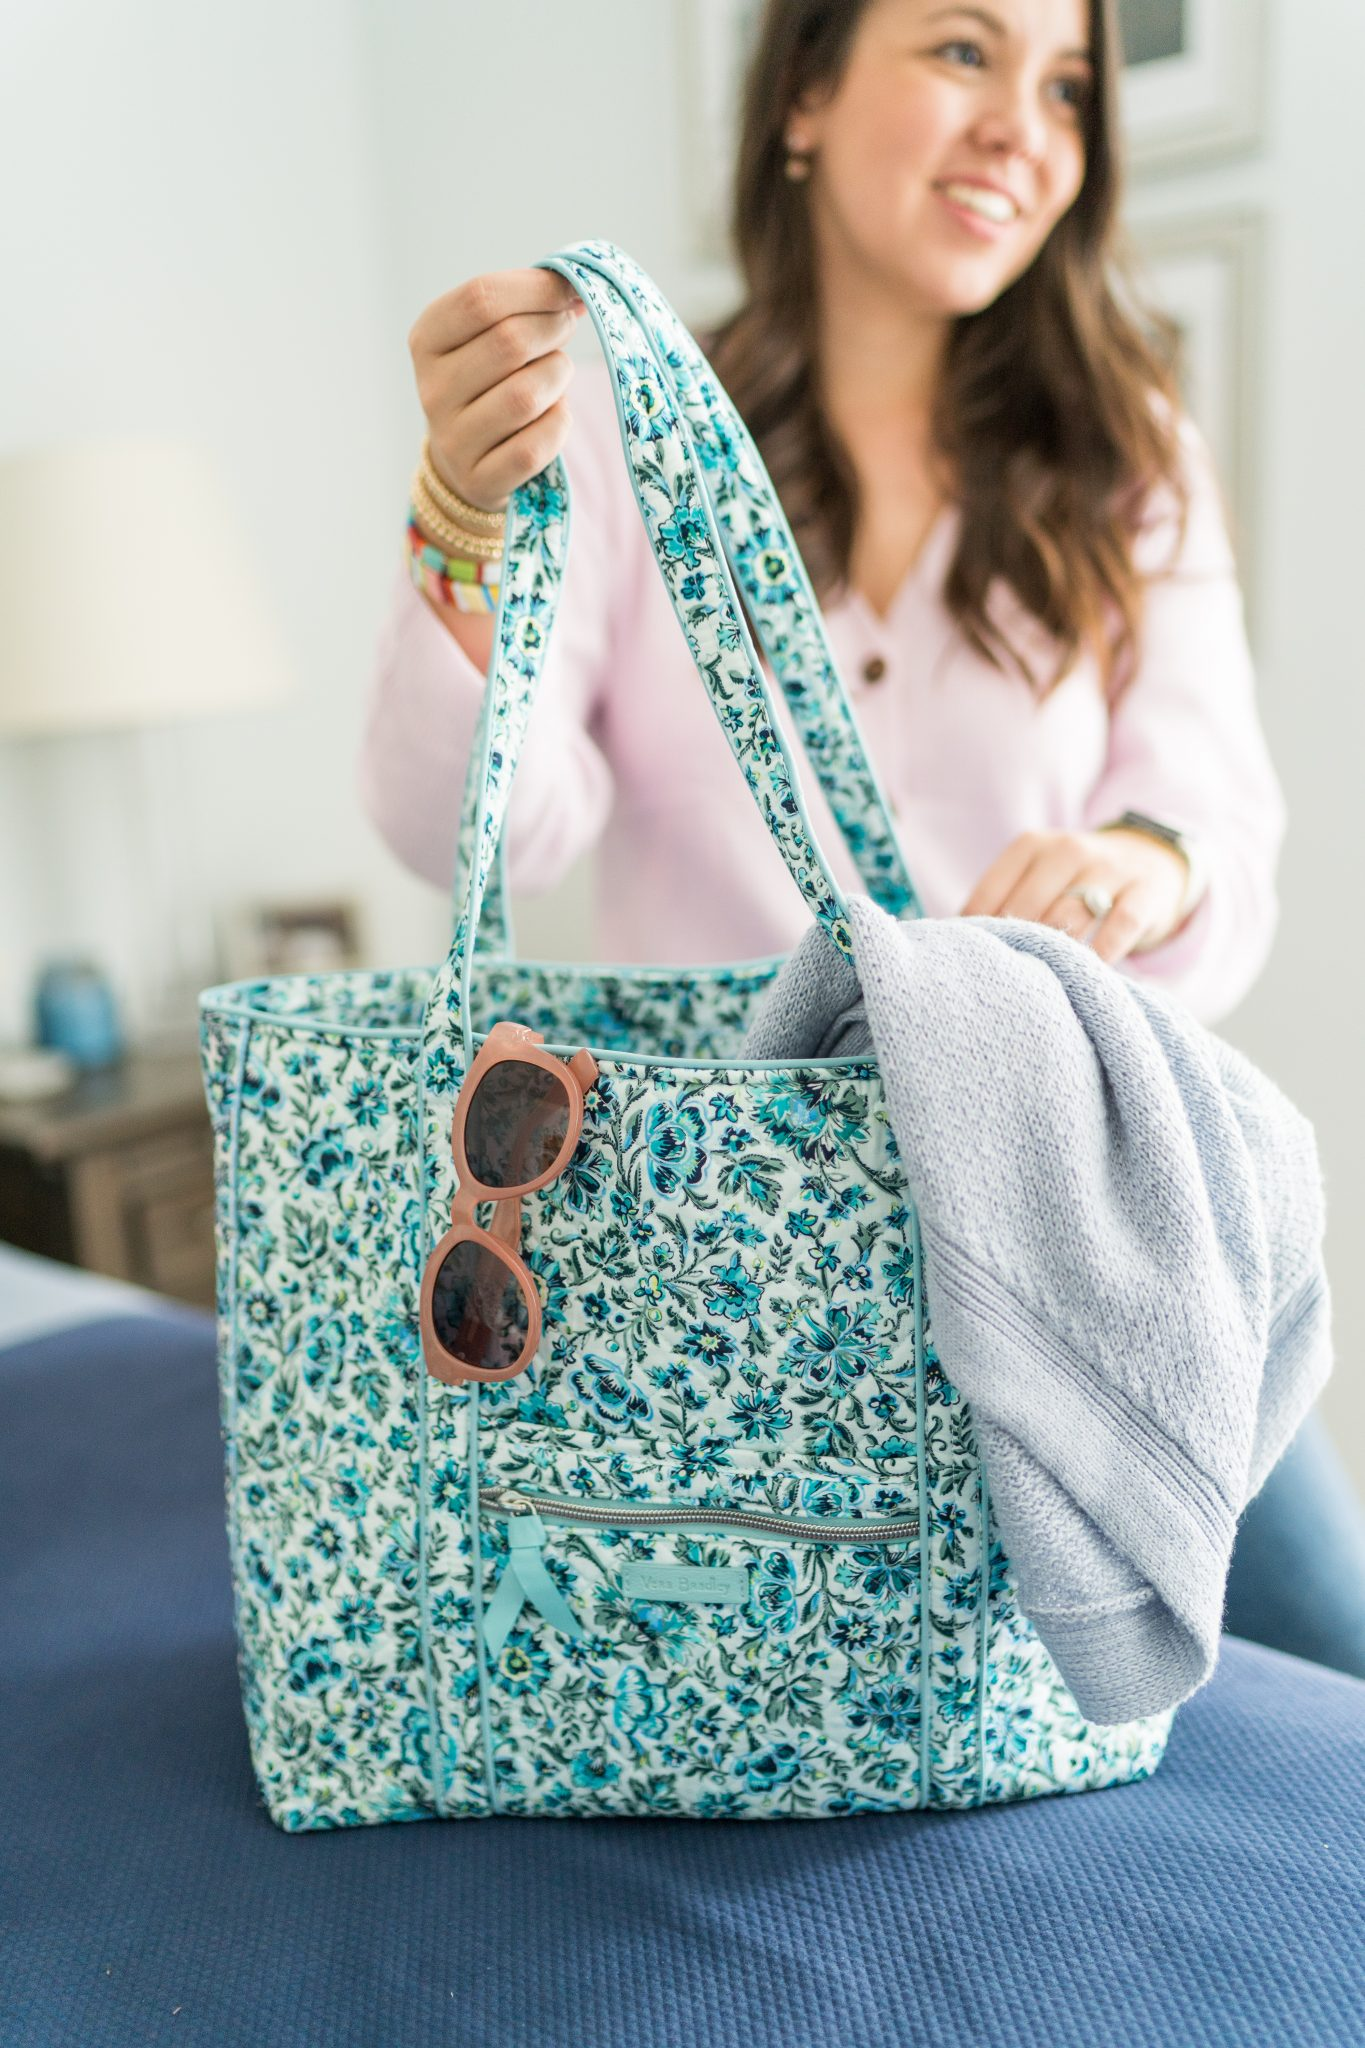 Vera Bradley daily tote bag for travel